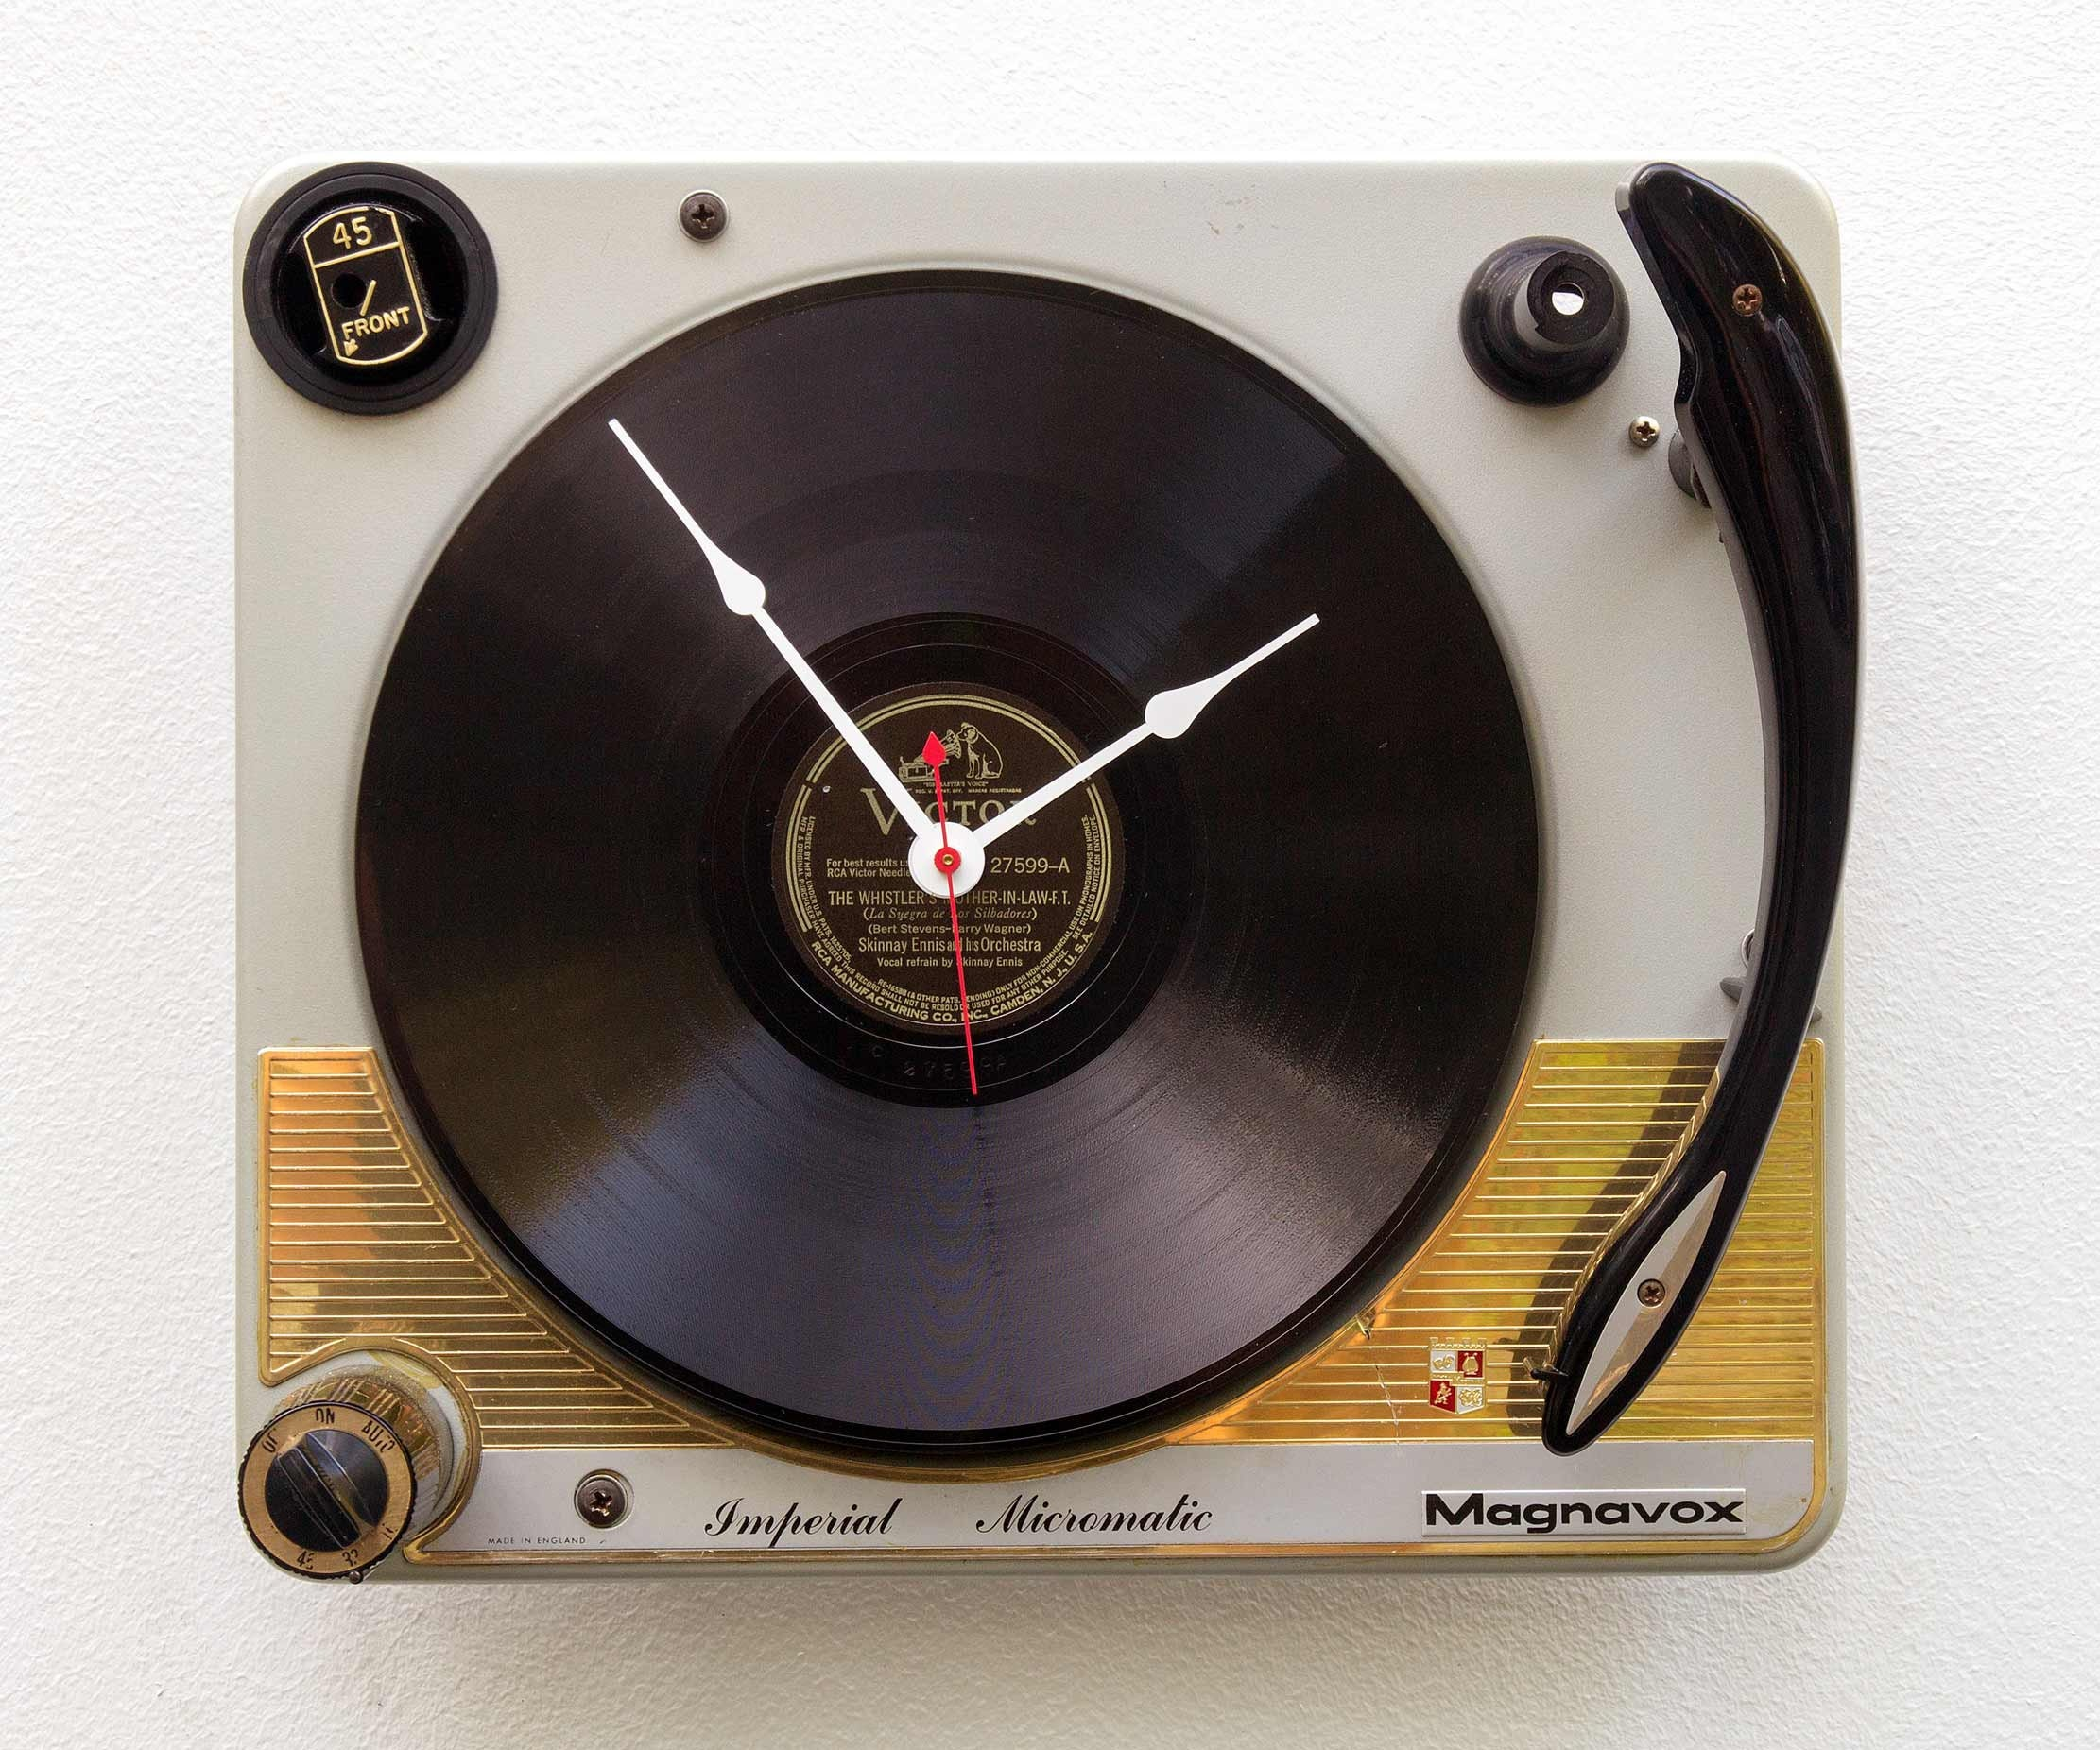 Recycled Turntable Clock, Record player clock, record album clock, music  lover clock, Art Clock, upcycled large wall clock, vintage LP vinyl